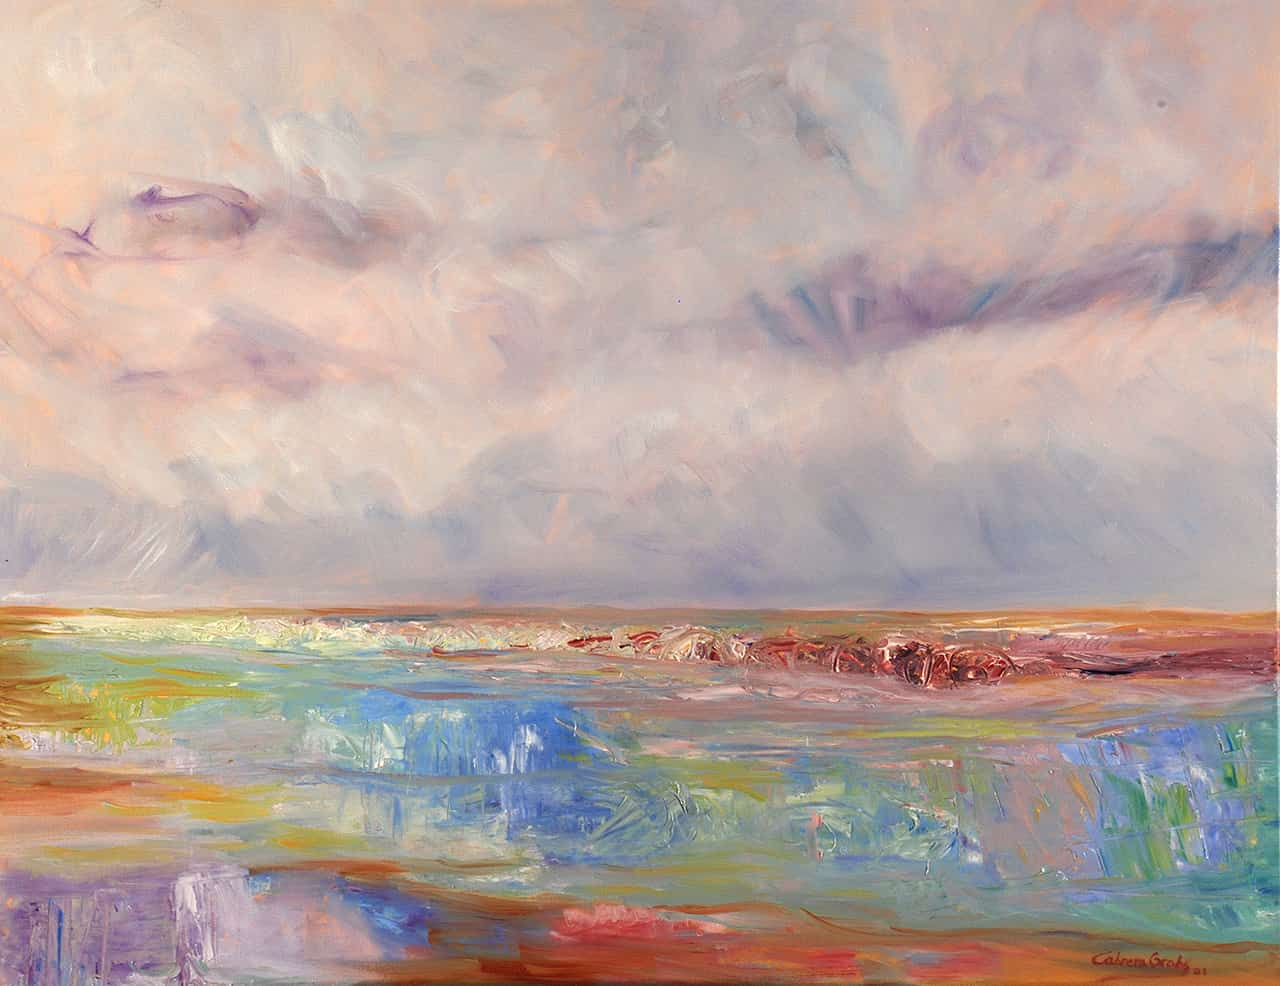 Oil-on-canvas artwork that reflects the deep vibrations that the painter feels contemplating the immense sea, and that she expresses in this 90 x 70 cm horizontal colorful painting